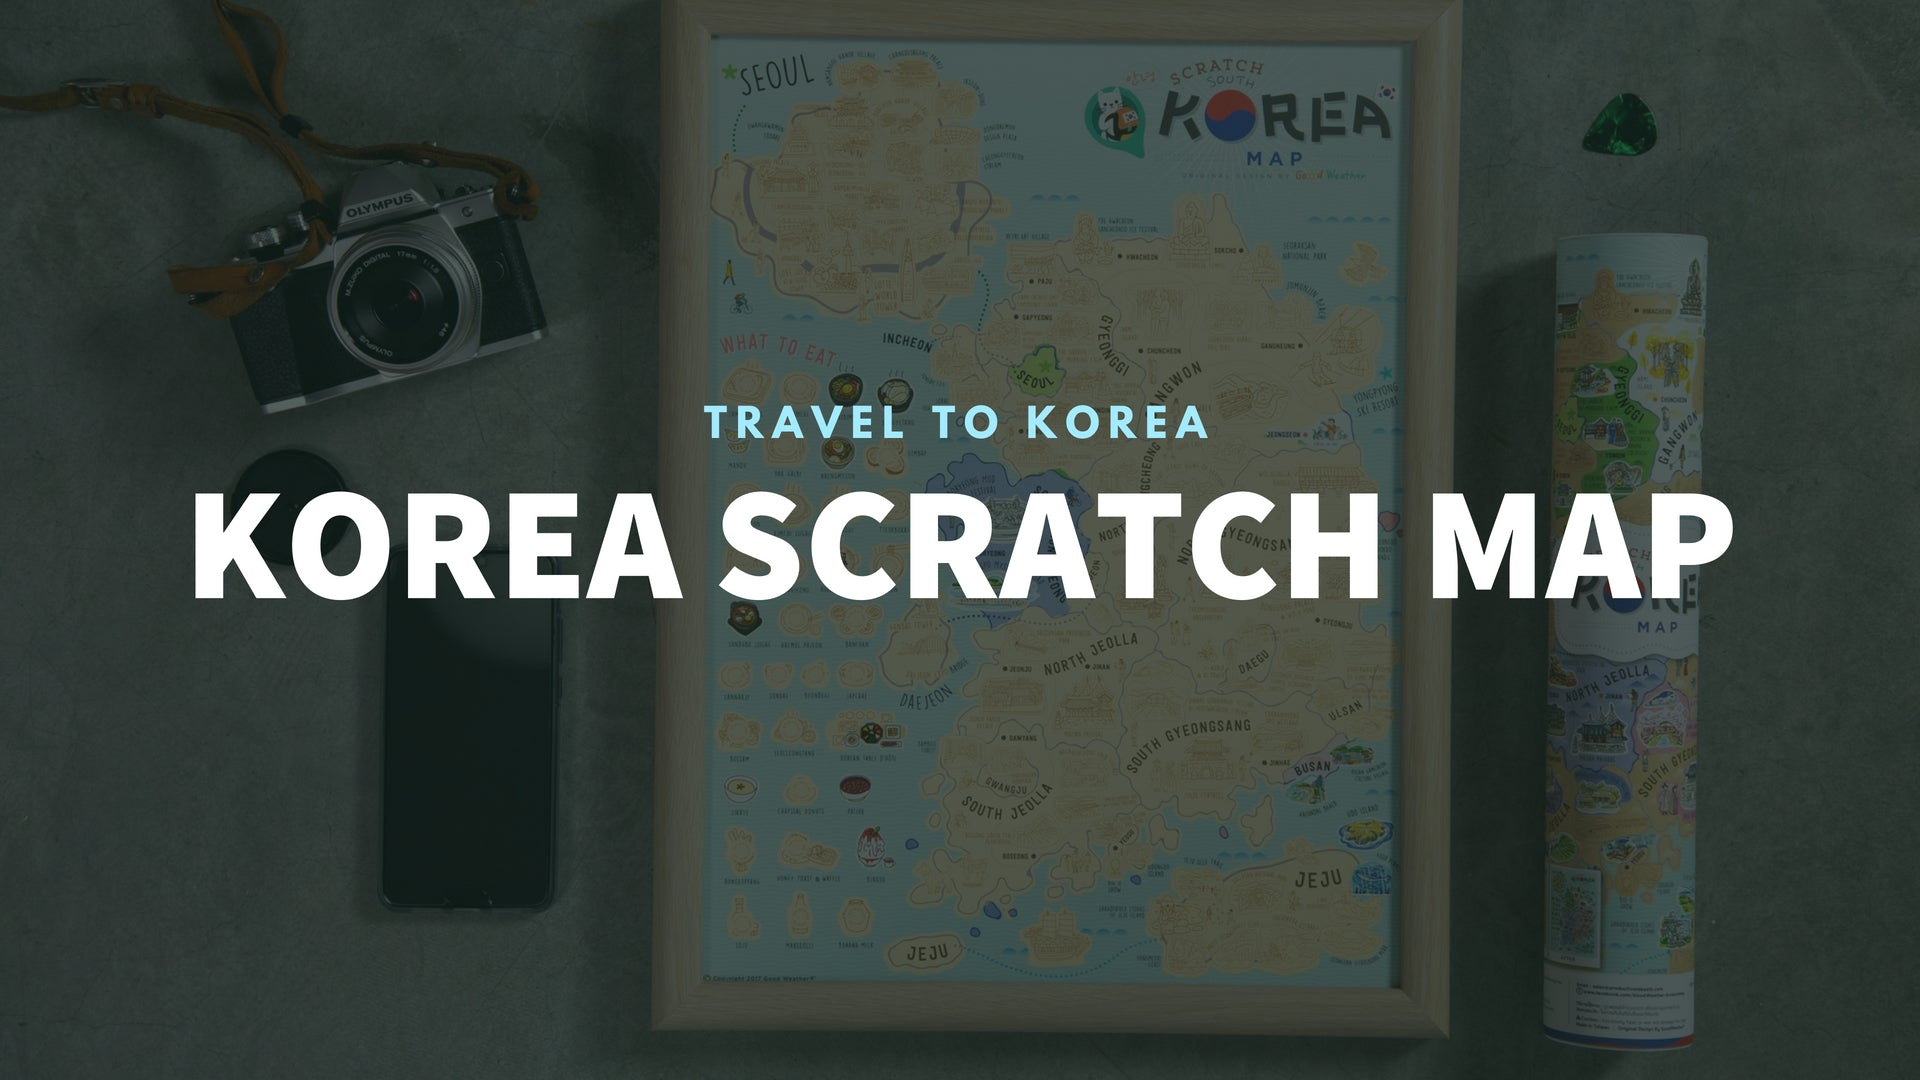 Good Weather Korea Scratch Travel Map with frame Travel to Korea deluxe luckies world travel map with pins europe uk rosegold small personalised Scratch Off Traveling Korea travelization 韓國 刮刮地圖 刮刮樂 世界地圖 banner - GadgetiCloud